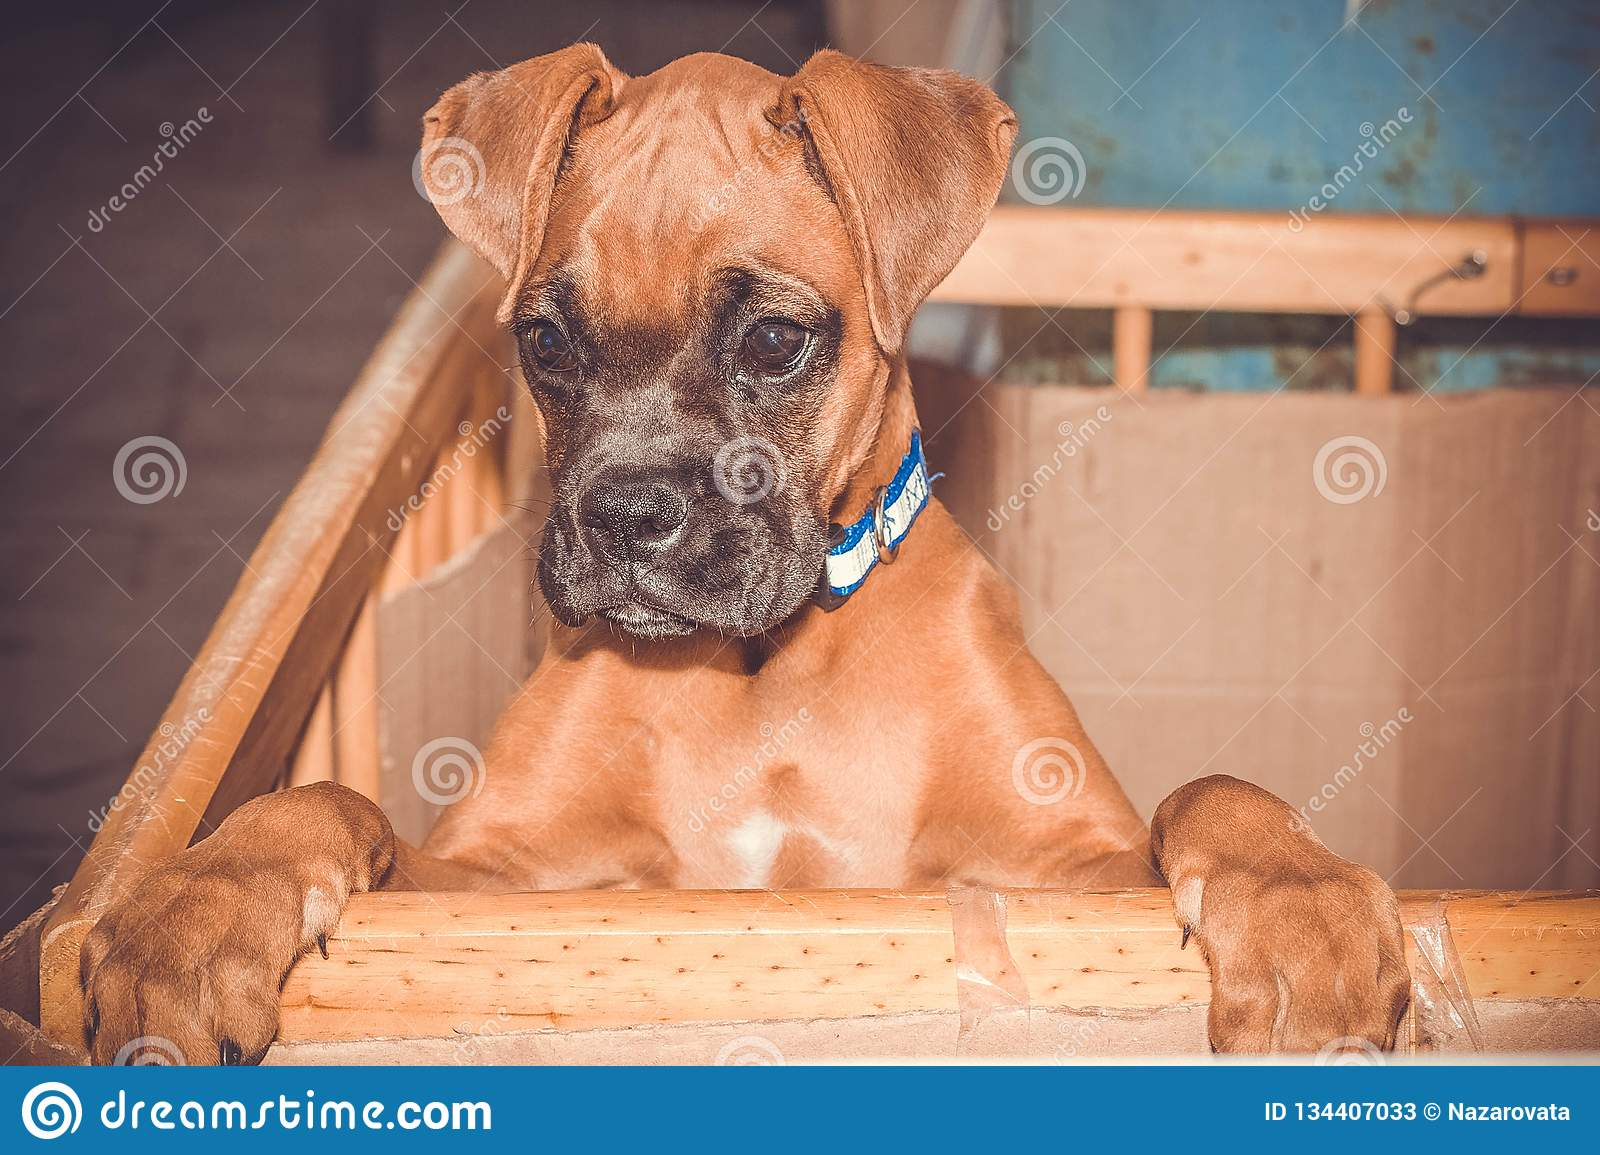 Boxer breed puppy